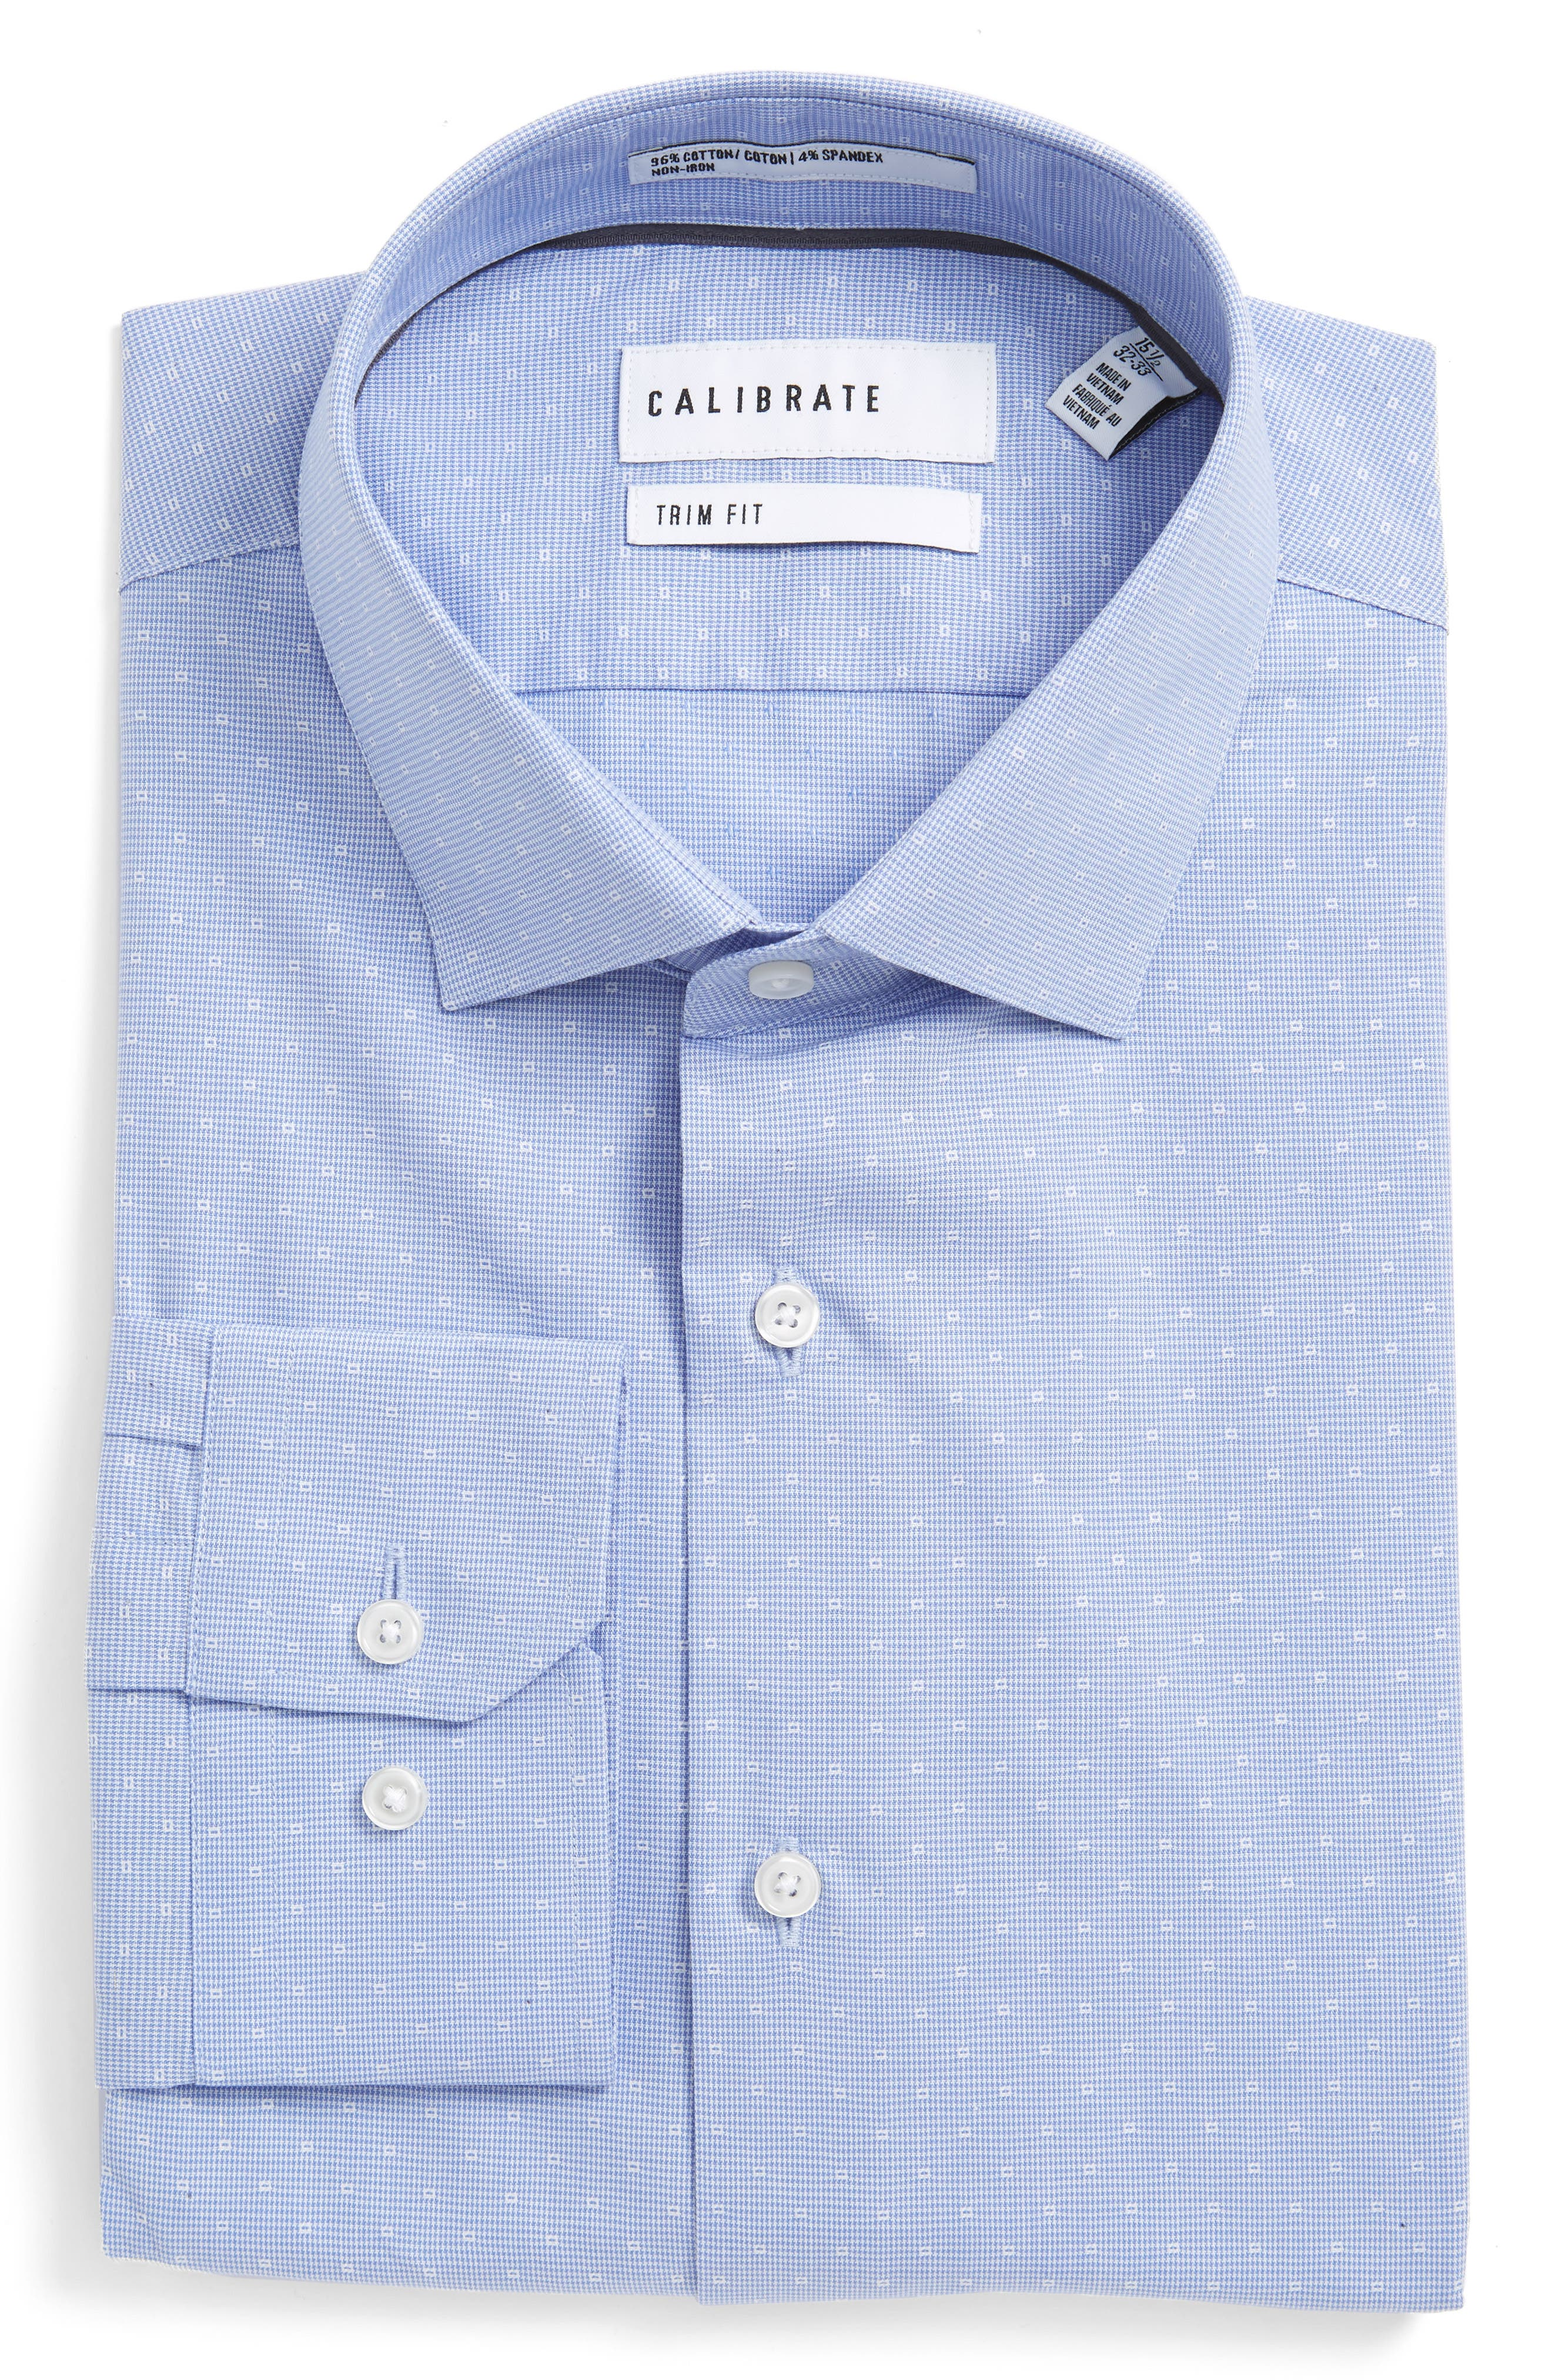 Trim Fit Non-Iron Stretch Houndstooth Dress Shirt,                         Main,                         color, Blue Wedgewood